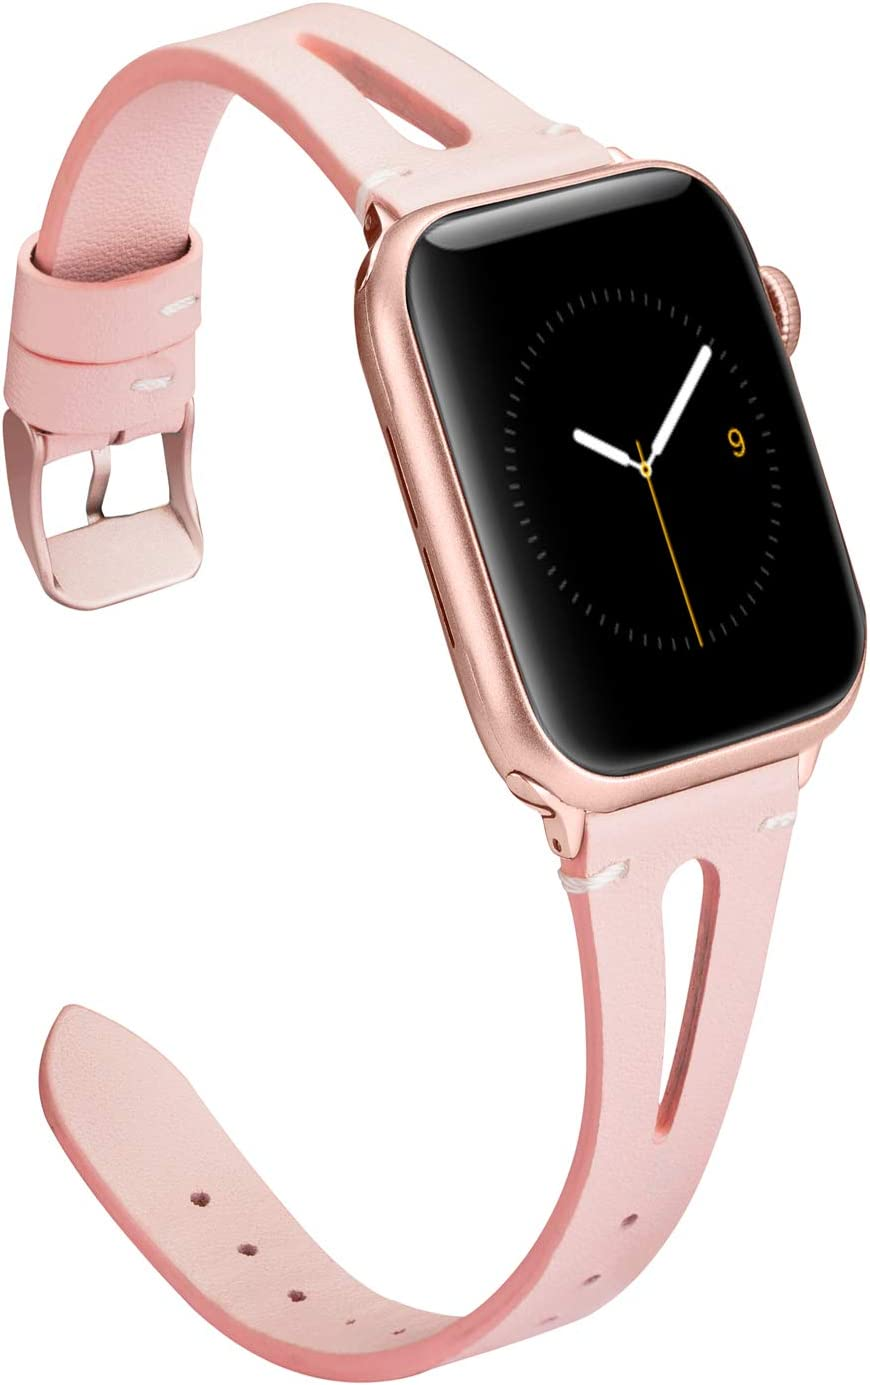 Wearlizer Womens Rose Pink Leather Compatible with Apple Watch Bands 42mm 44mm for iWatch Special Triangle Hole Strap Wristband Sport Replacement Bracelet (Metal Rose Gold Buckle) Series 5 4 3 2 1